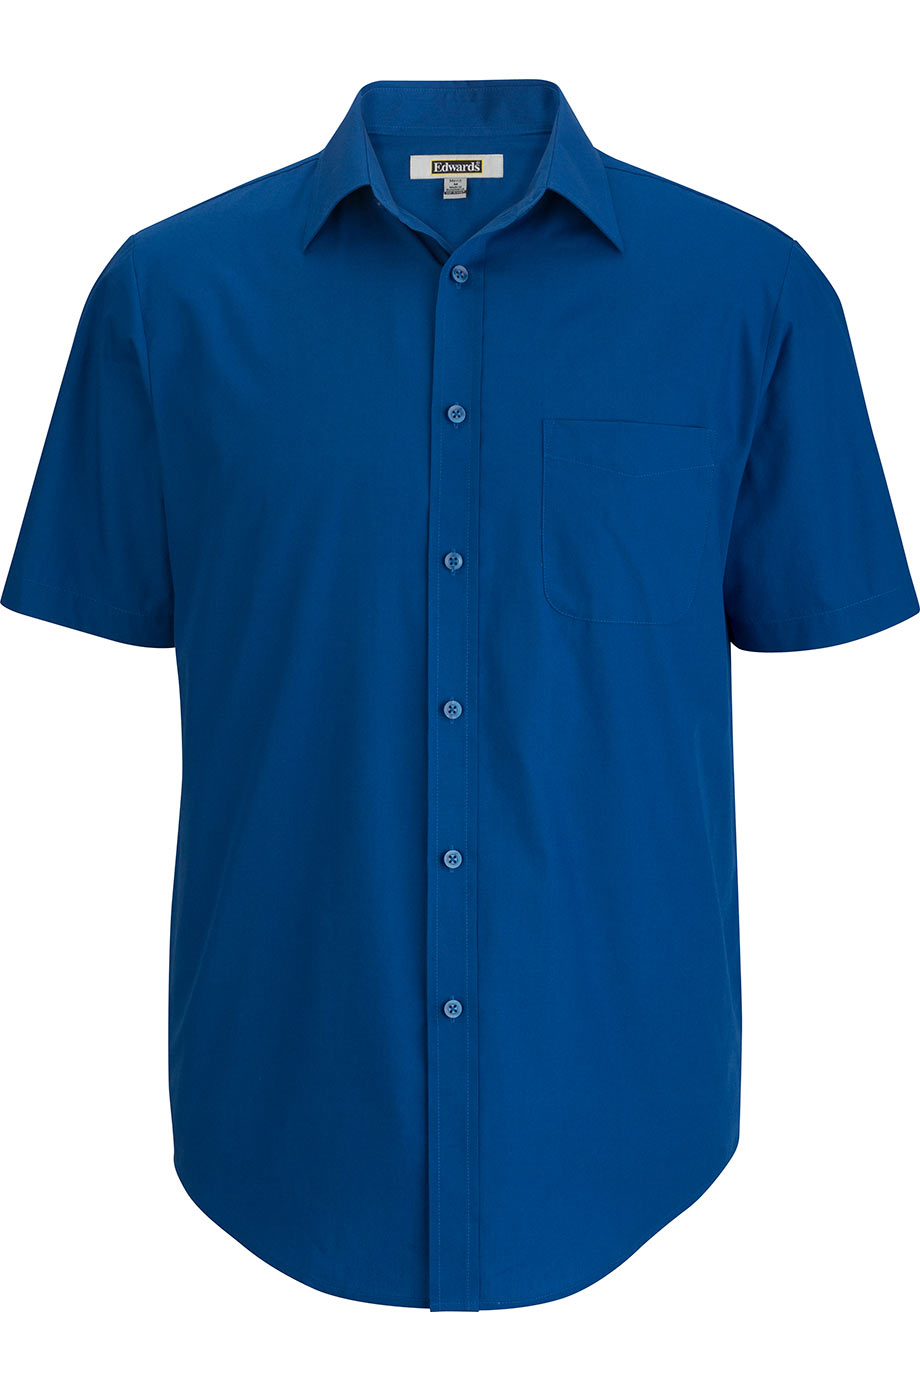 Royal Edwards Mens Essential Broadcloth Shirt Short Sleeve